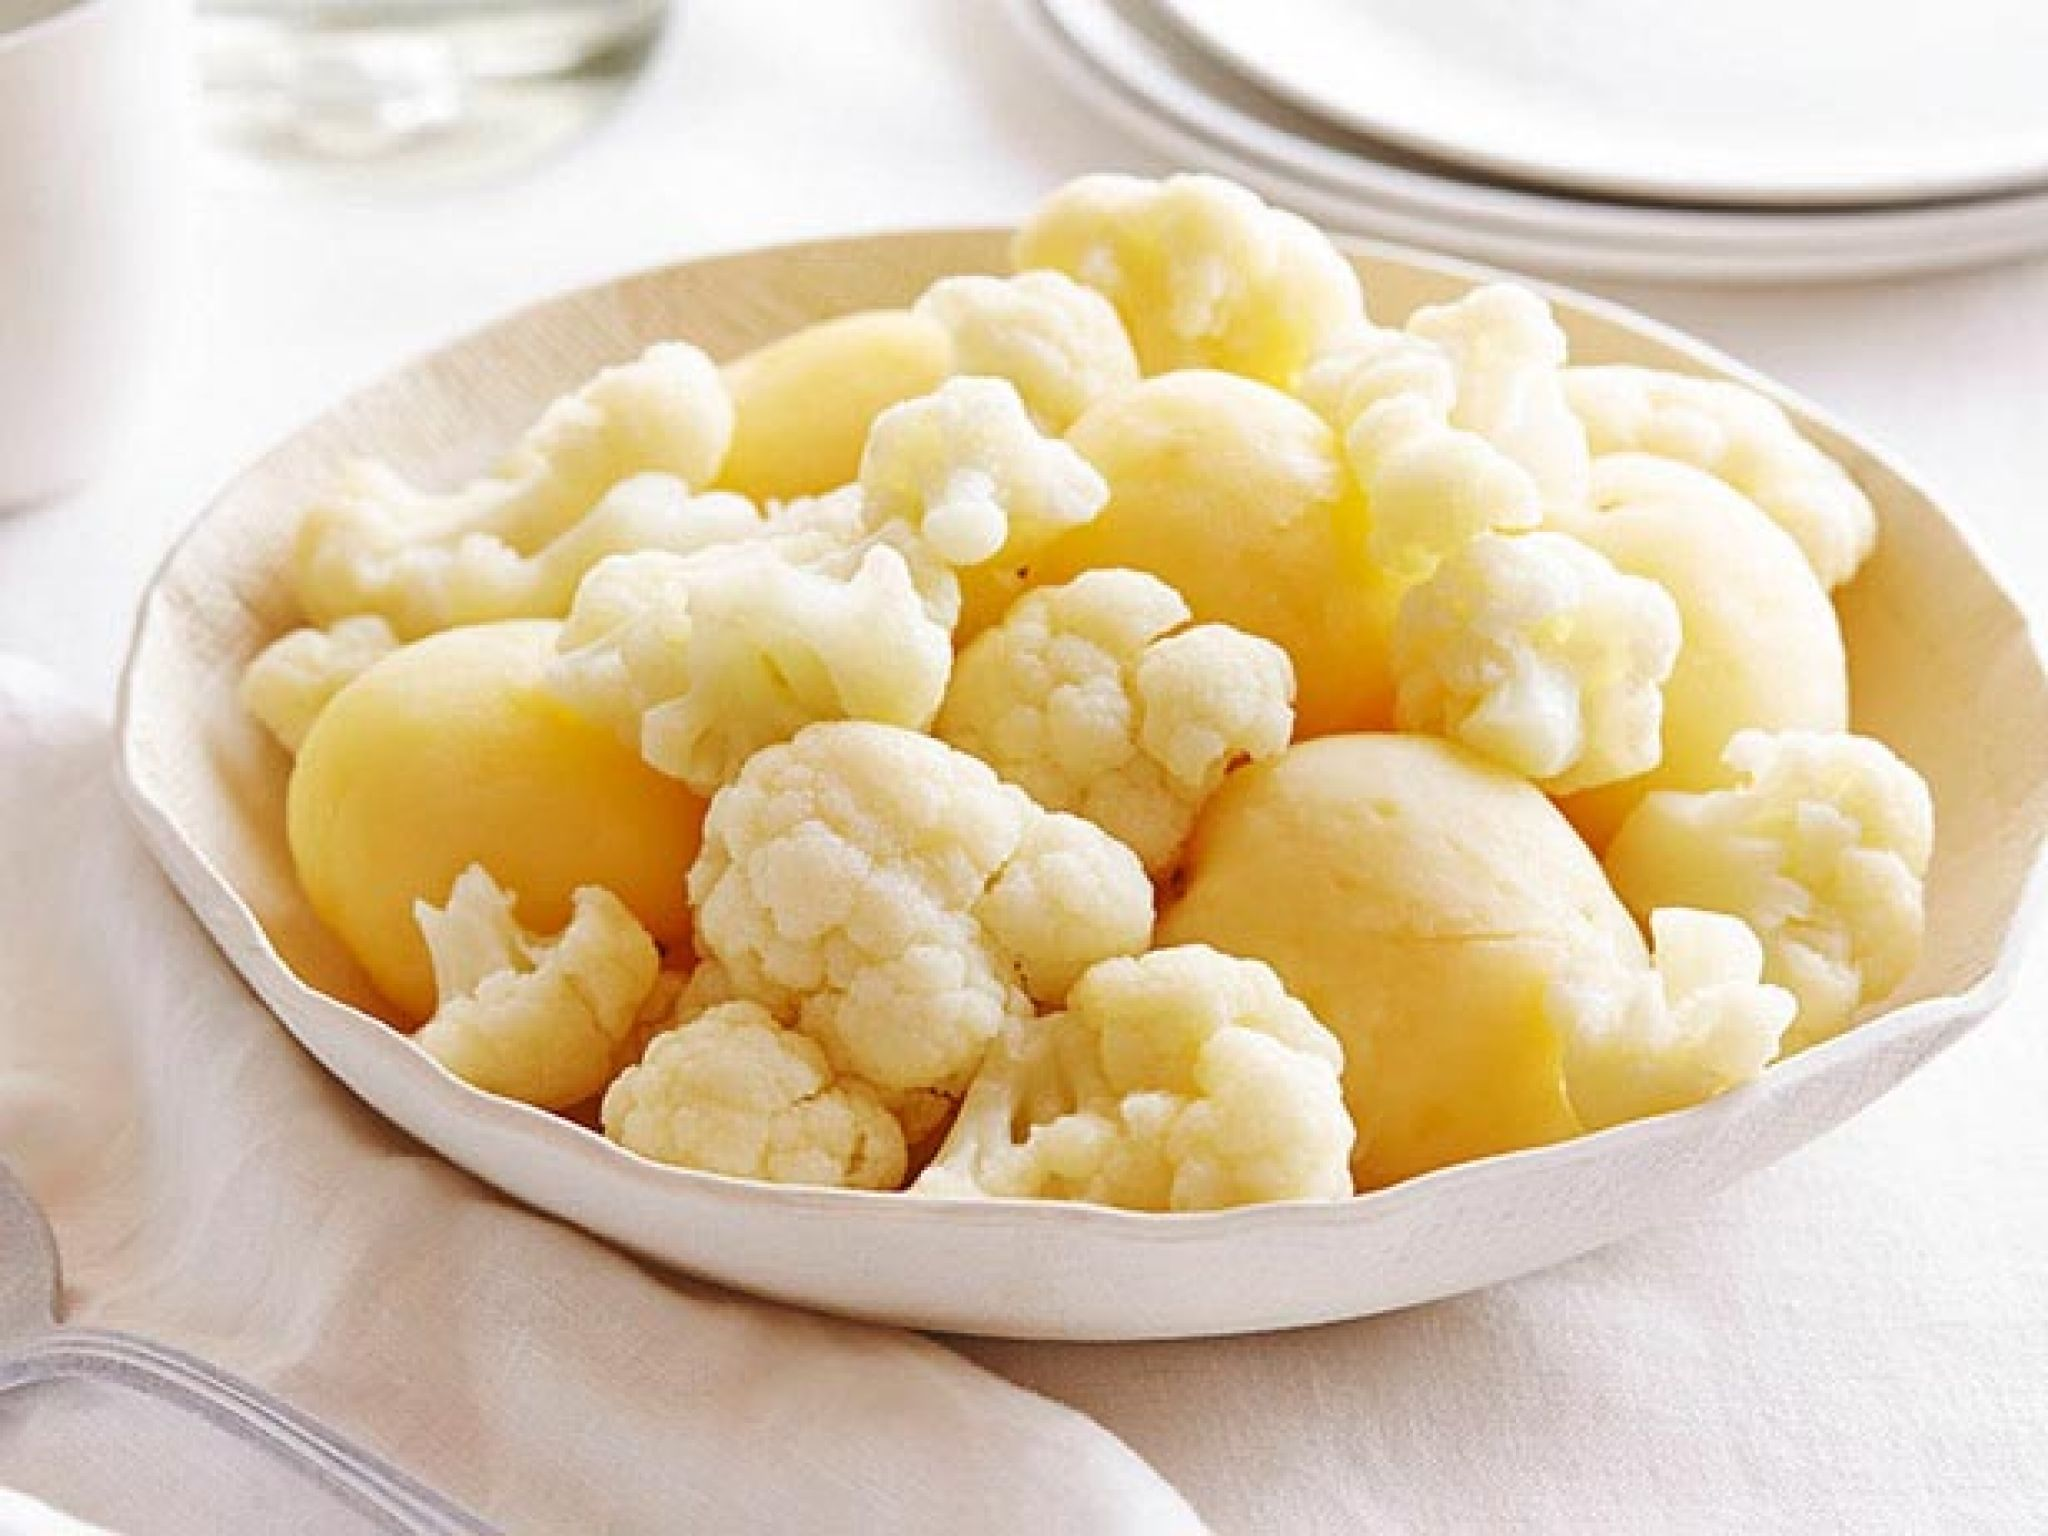 Cauliflower-Potato and Caraway Salad recipe from Food Network Kitchen via Food Network